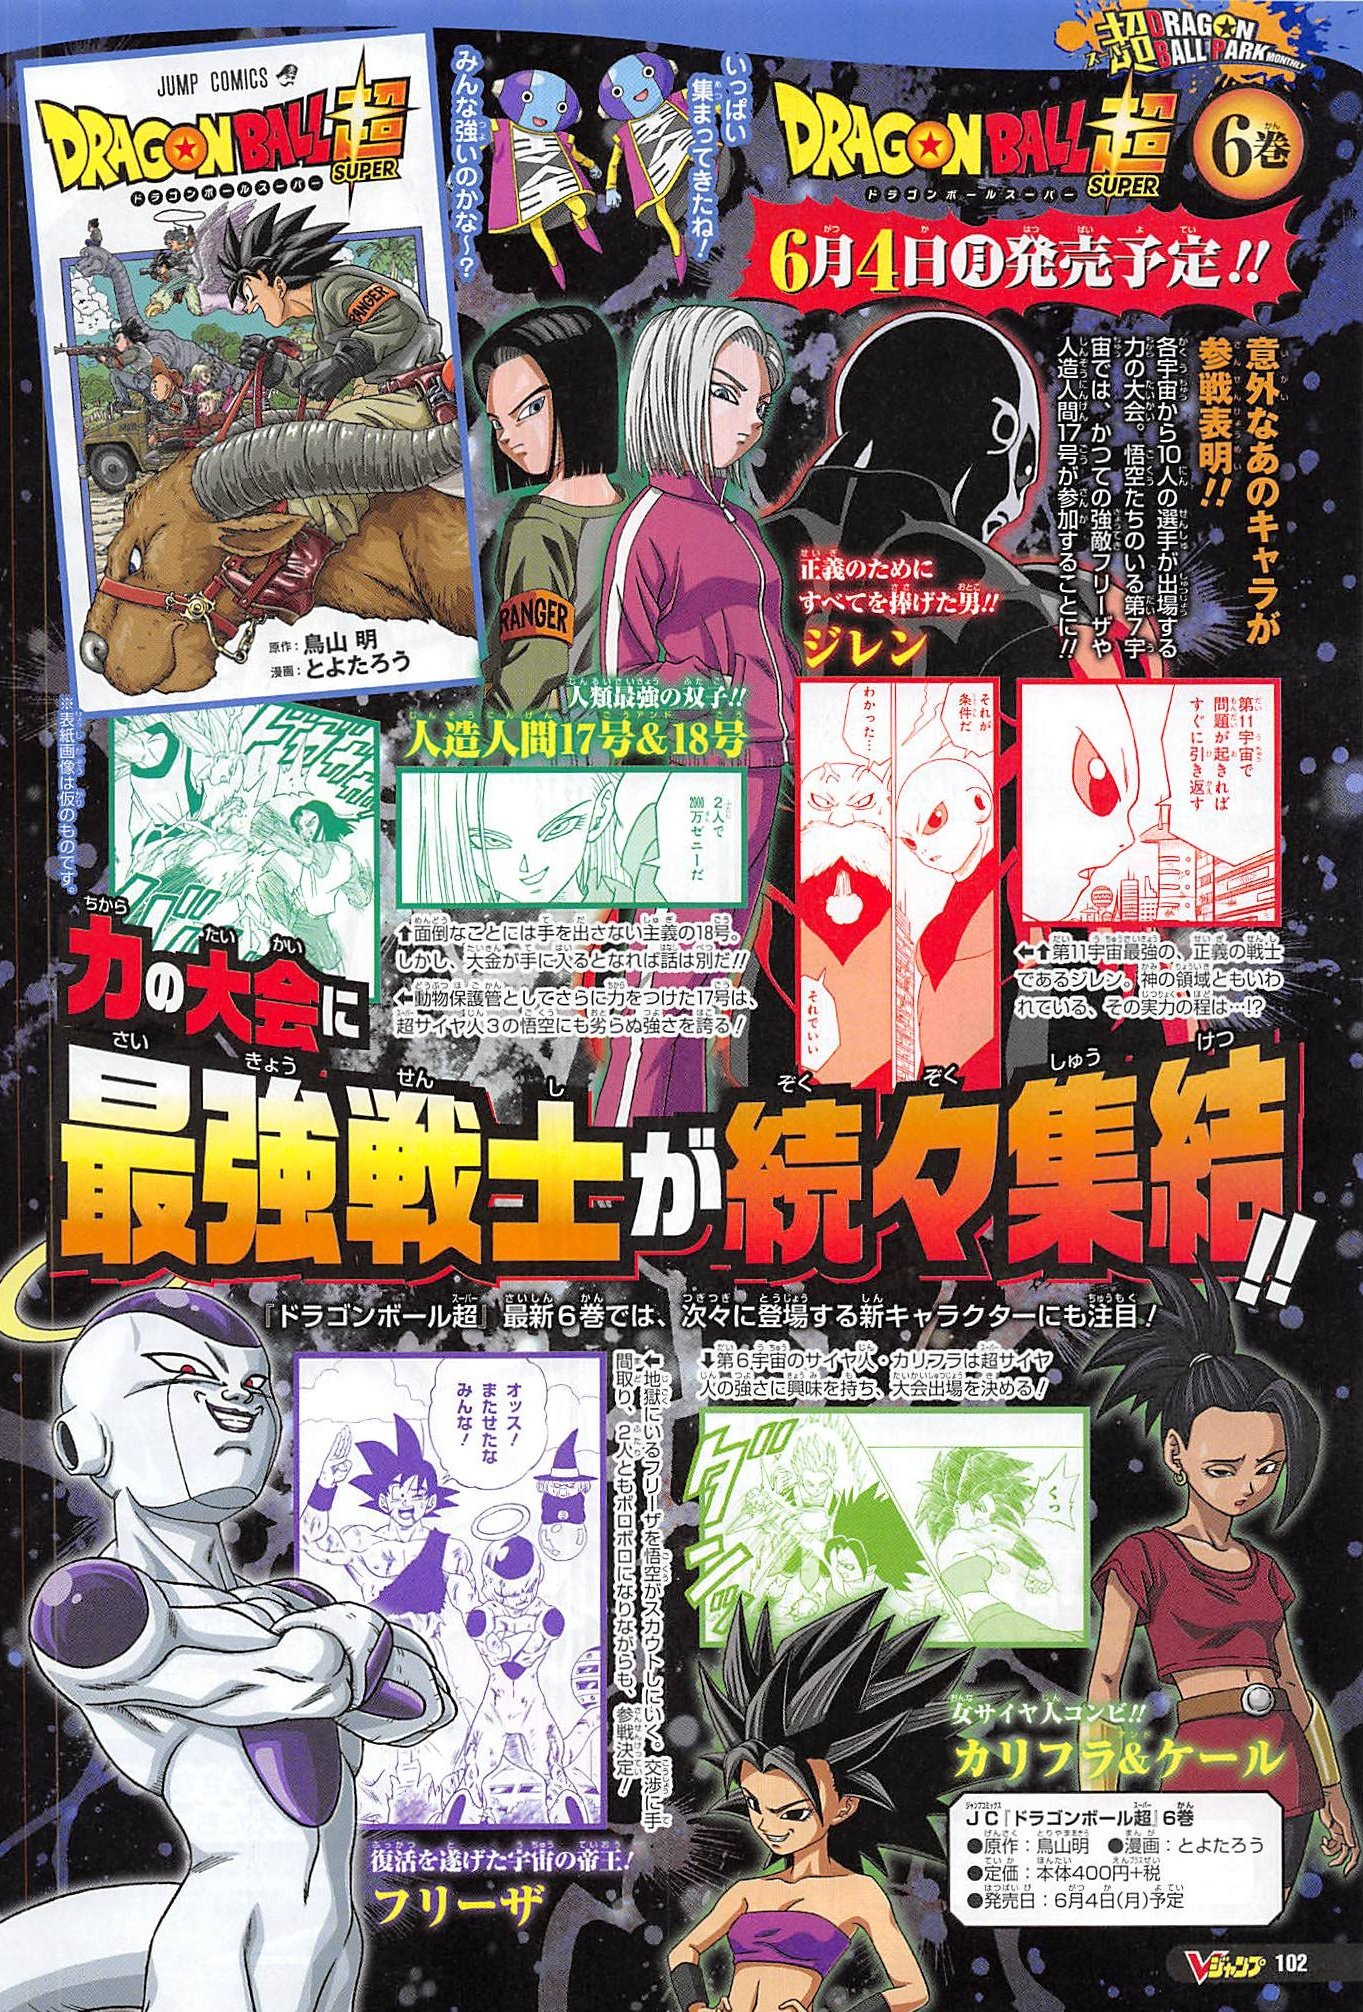 Dragon Ball Super, svelata la copertina del sesto volume